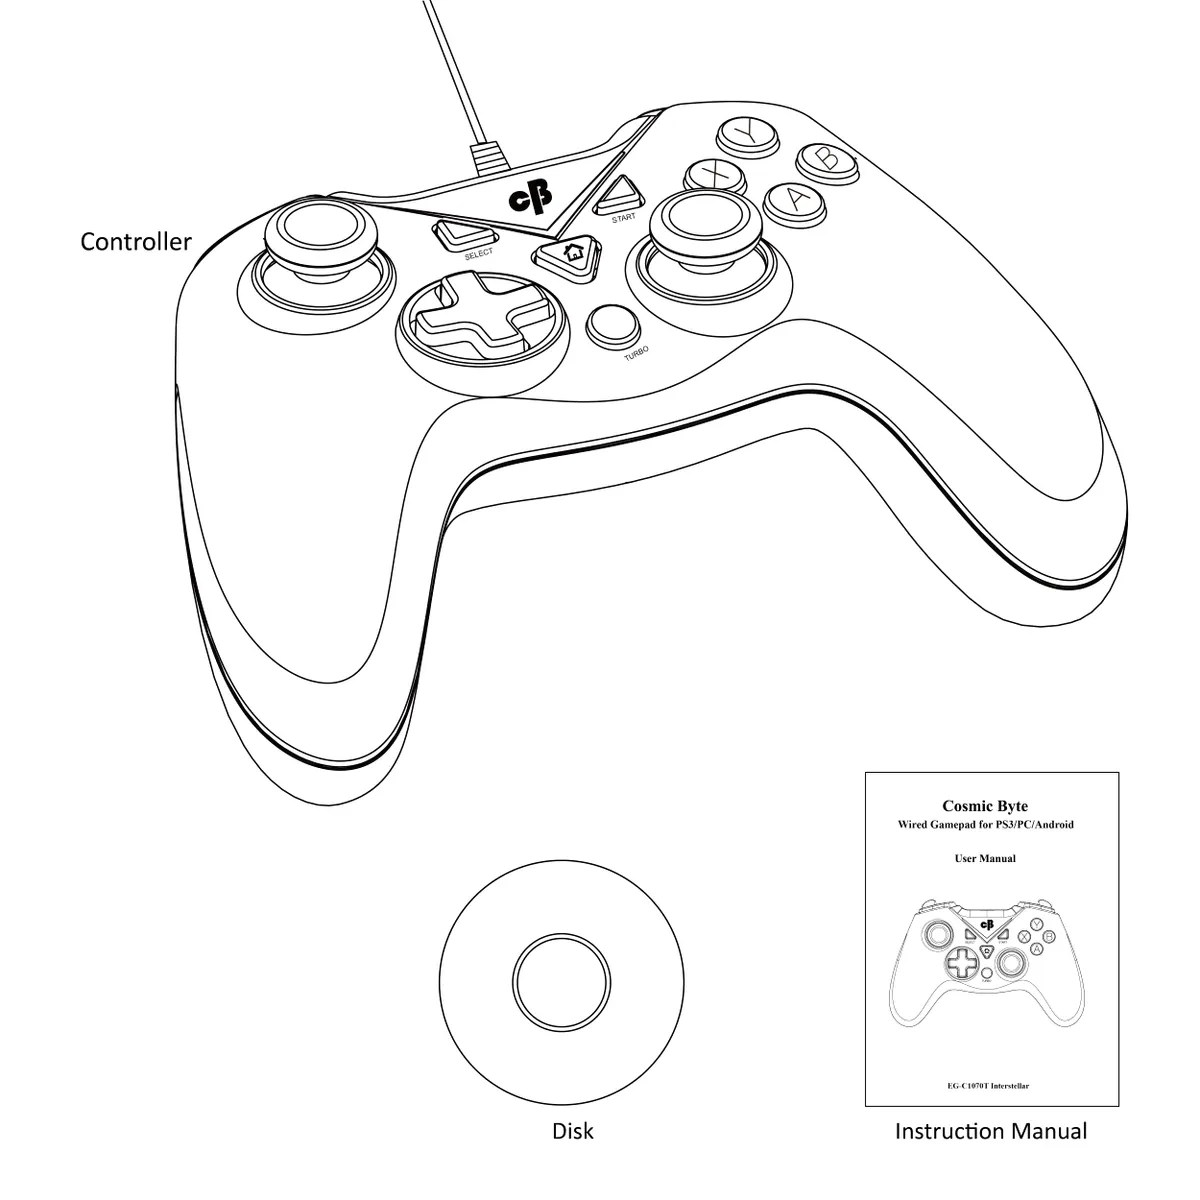 Cosmic Byte C T Interstellar Wired Gamepad For Pc Ps3